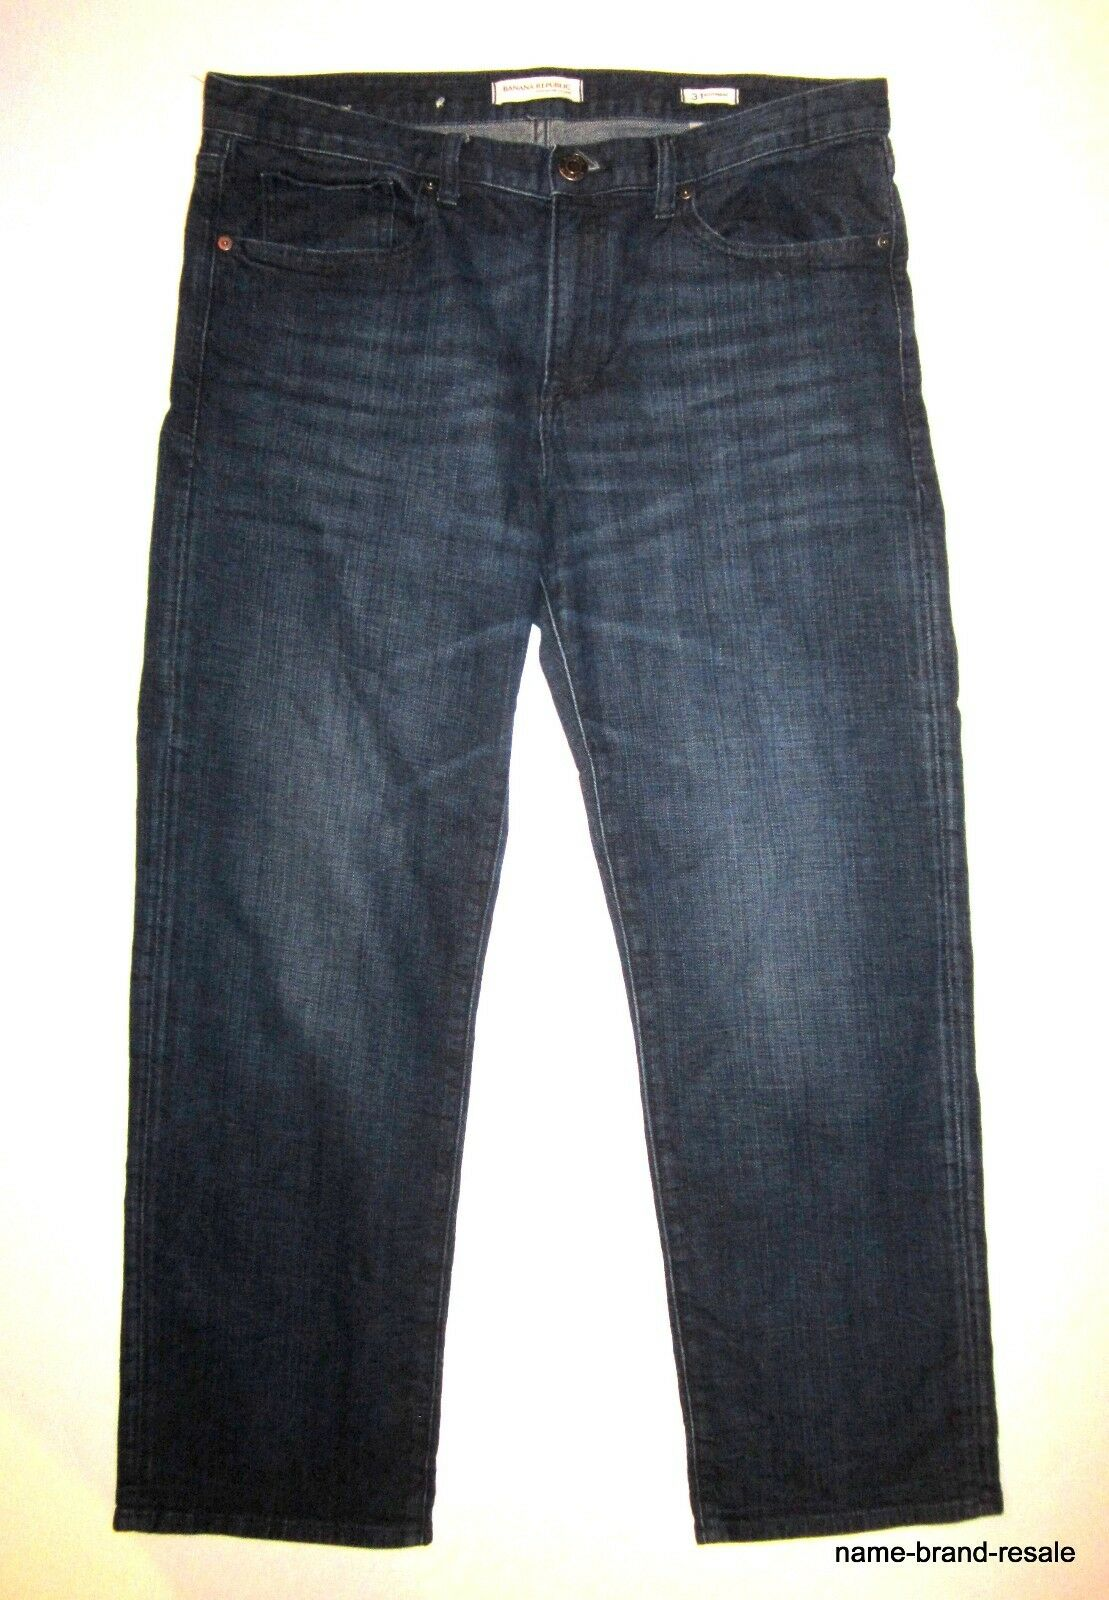 BANANA REPUBLIC Boyfriend JEANS Womens 31 Dark Faded Denim